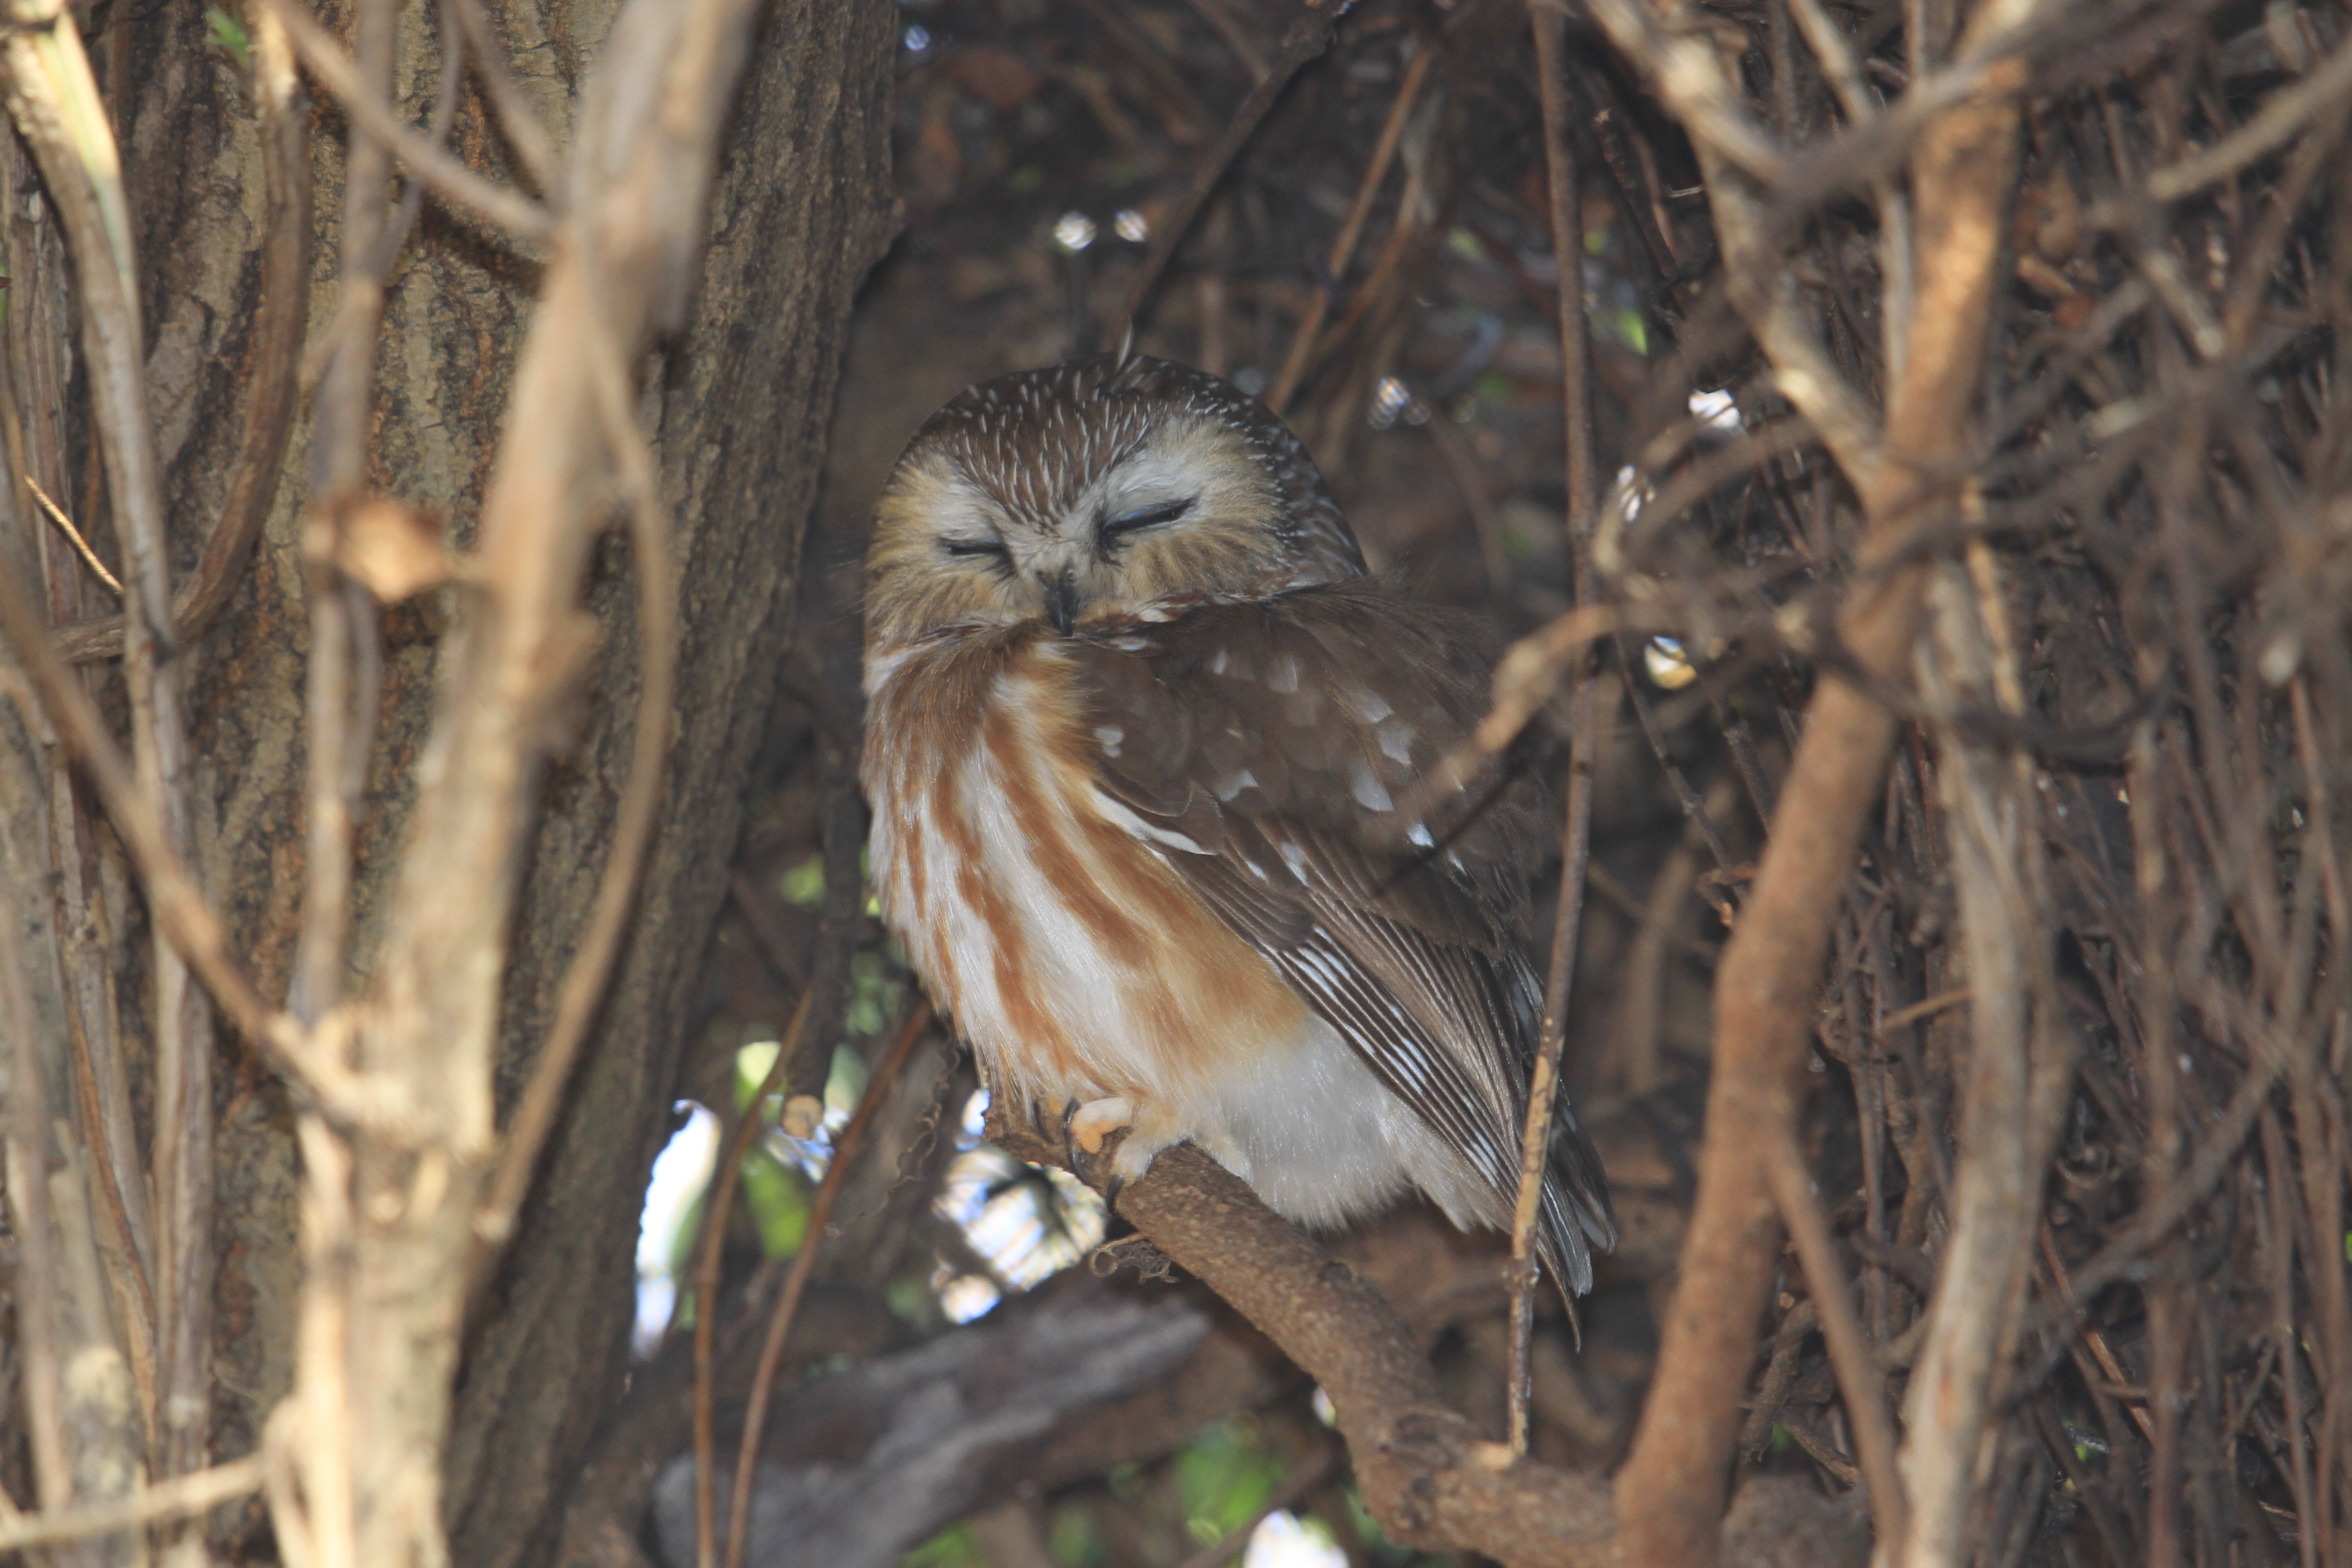 Northern Saw-whet Owl roosting. Photo by Adrian Binns.